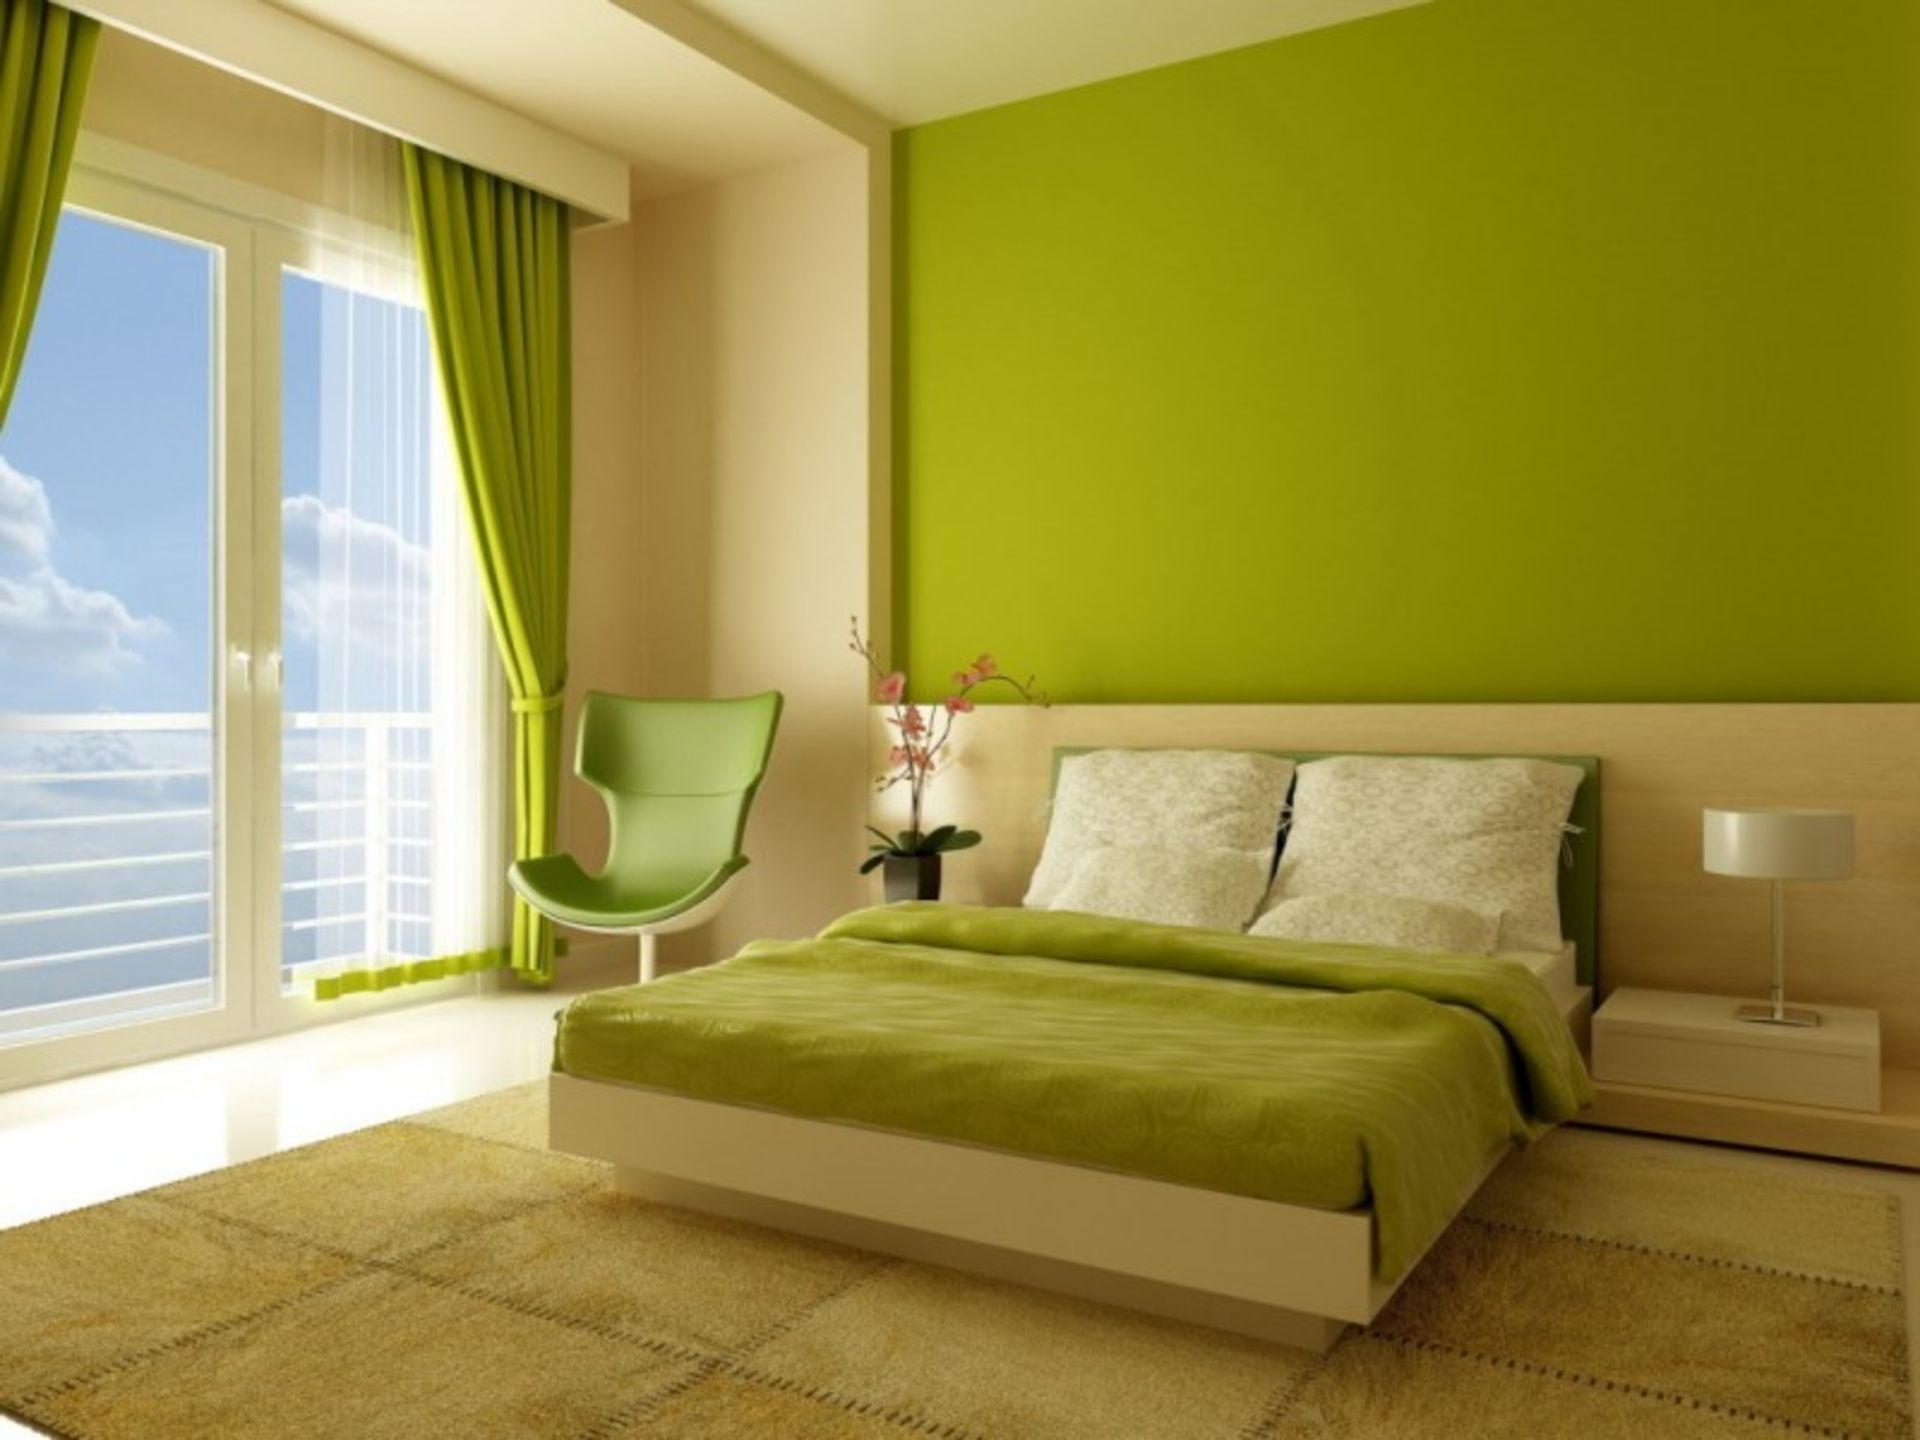 Green And Brown Bedroom Office Fresh Lime Green And Light Brown Bedroom Decorating Color